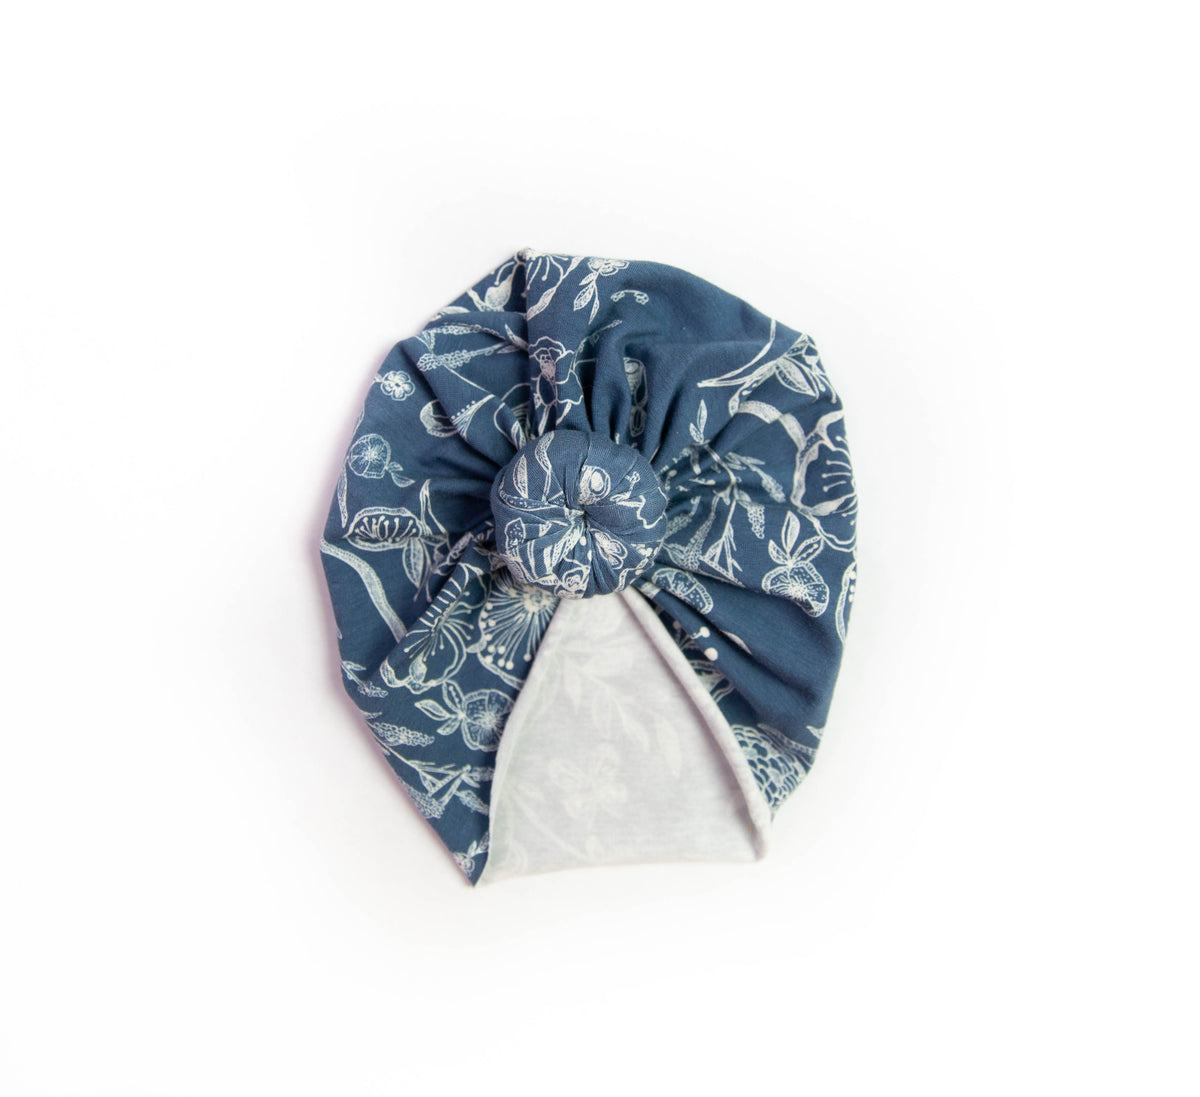 Dusty Blue Floral Headwrap Turban | Knit Headwrap